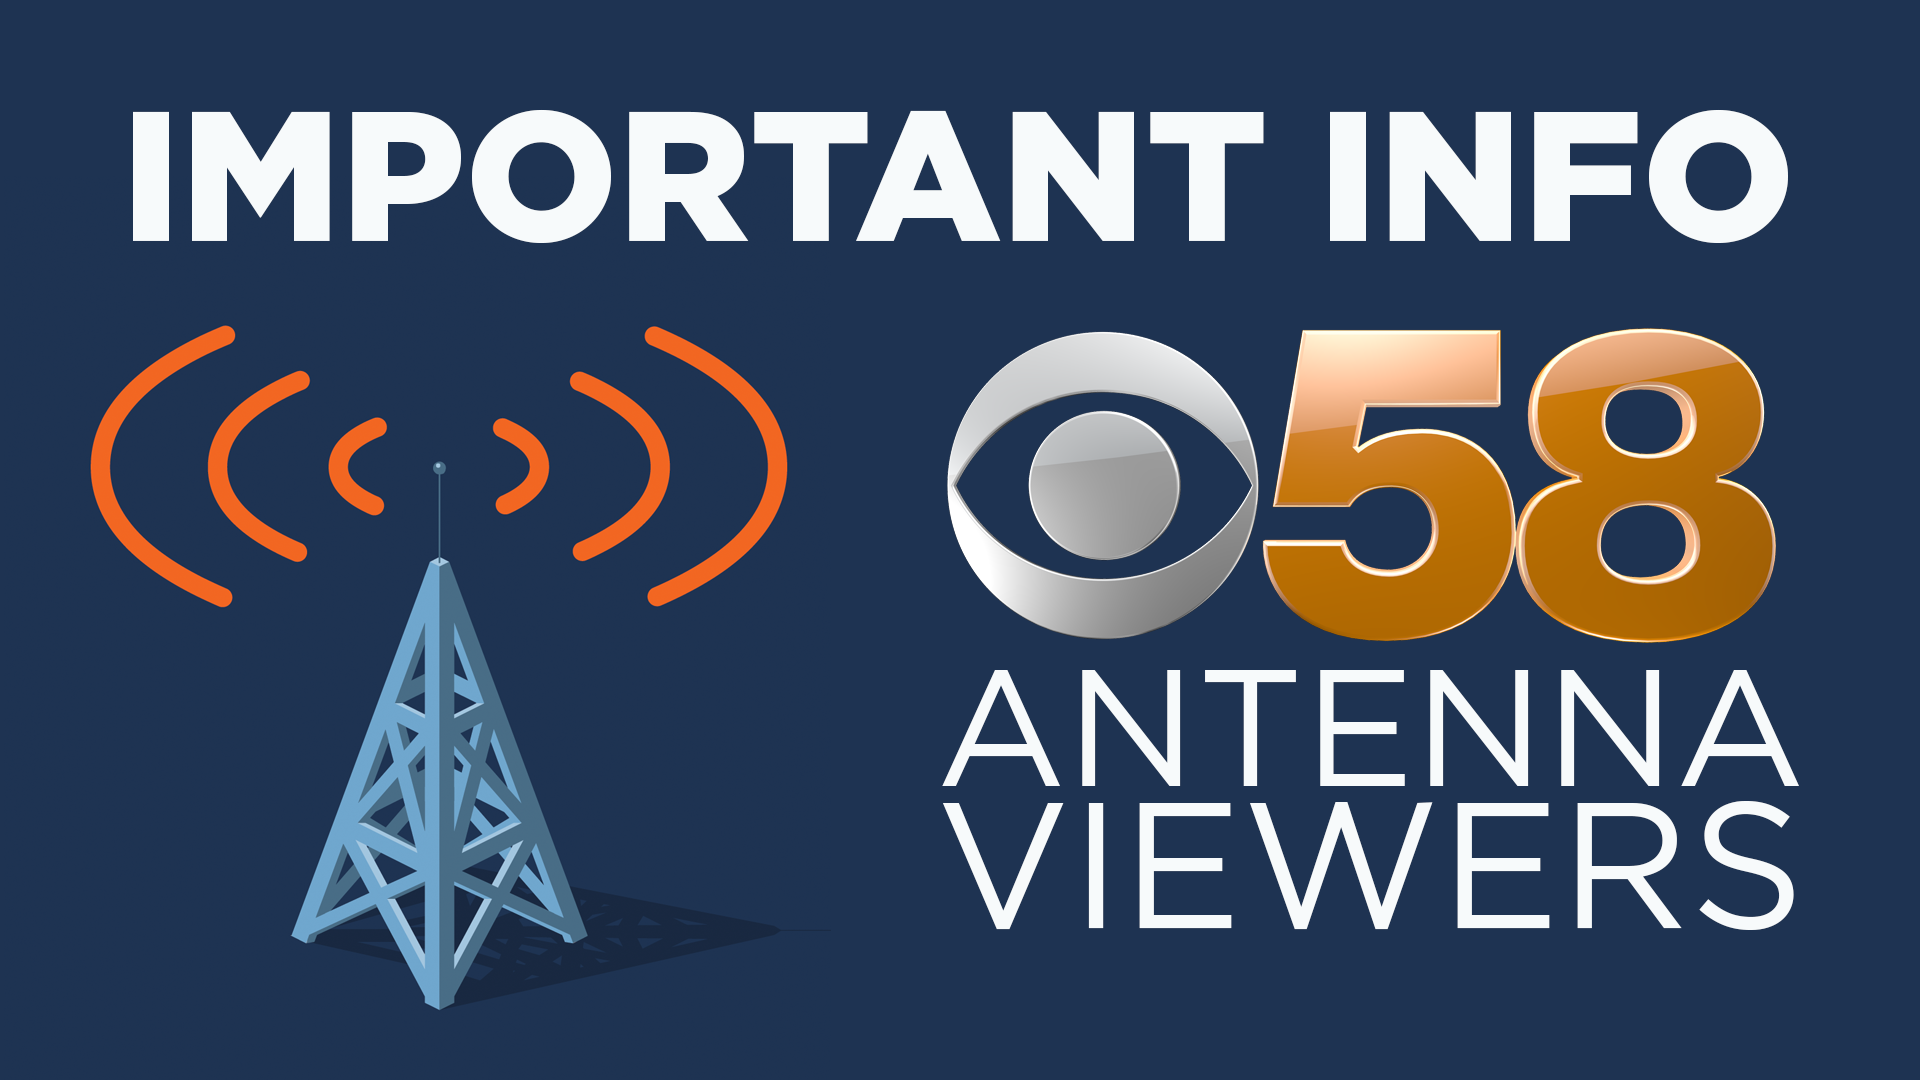 All stations on 58 stream transmitting at reduced power due to transmitter modifications